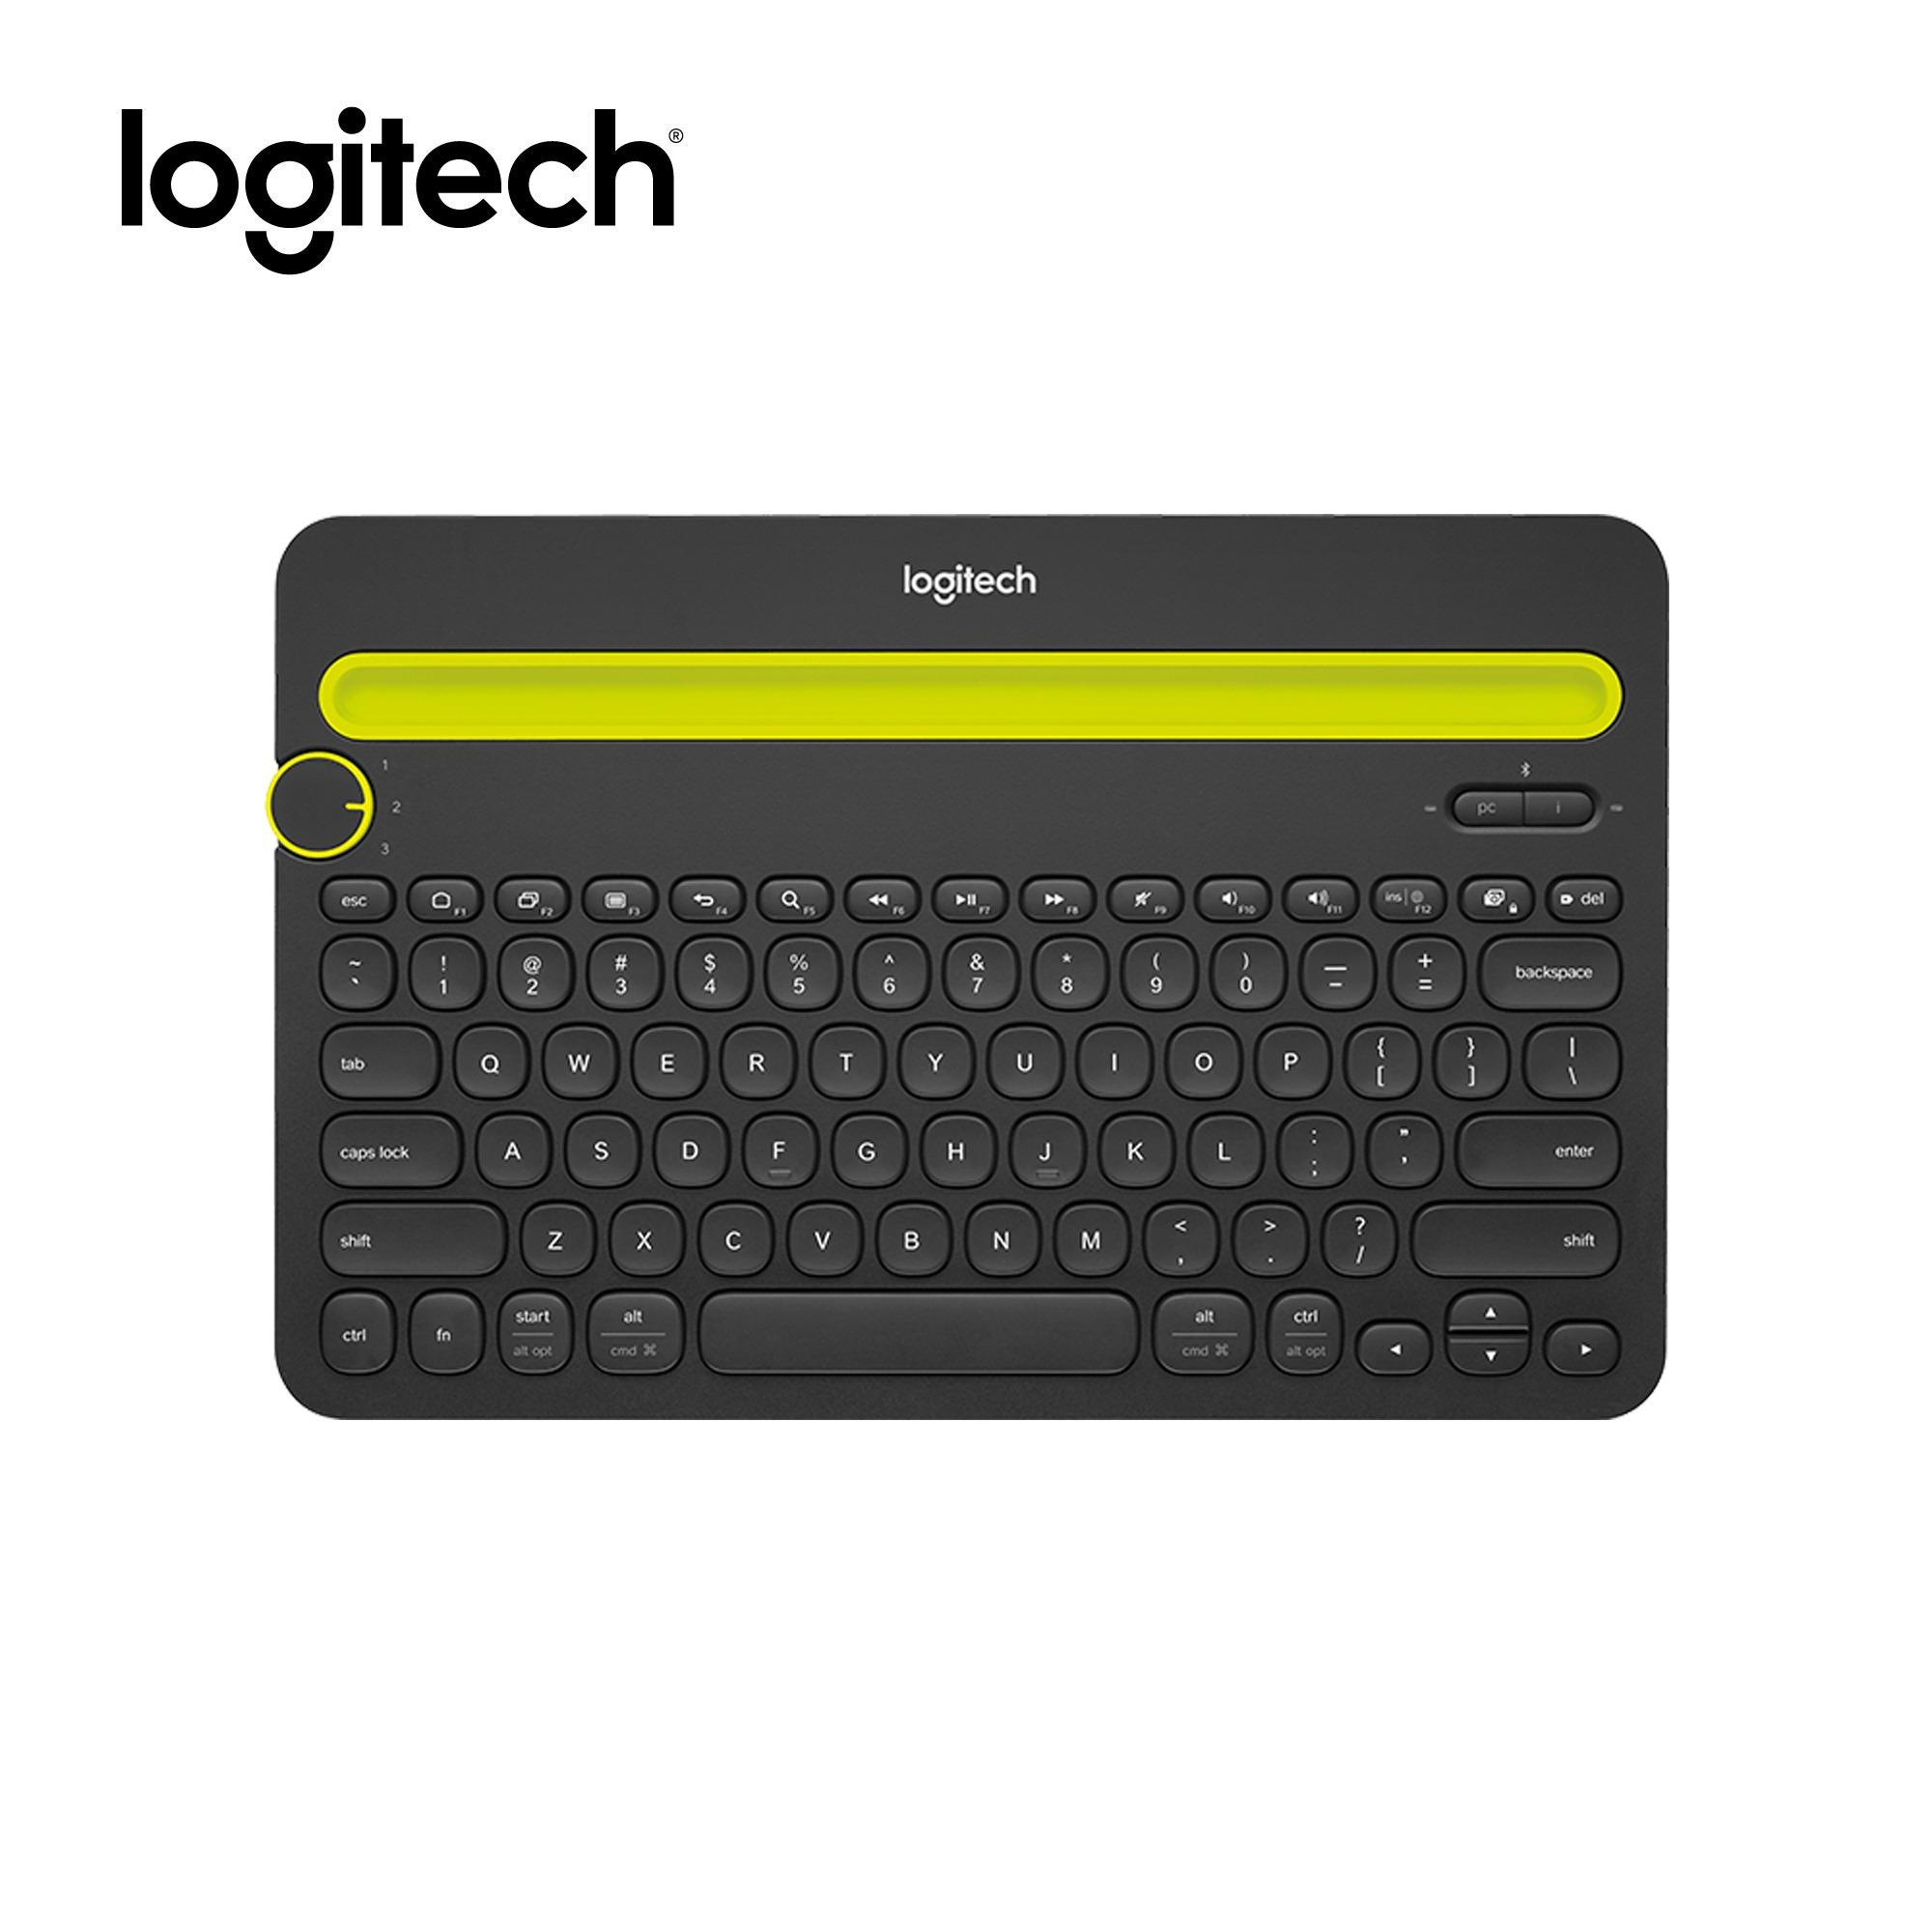 Logitech Computer Keyboards Philippines Pc For K120 Keyboard Usb K480 Bluetooth Multi Device Wireless Platform And Cross